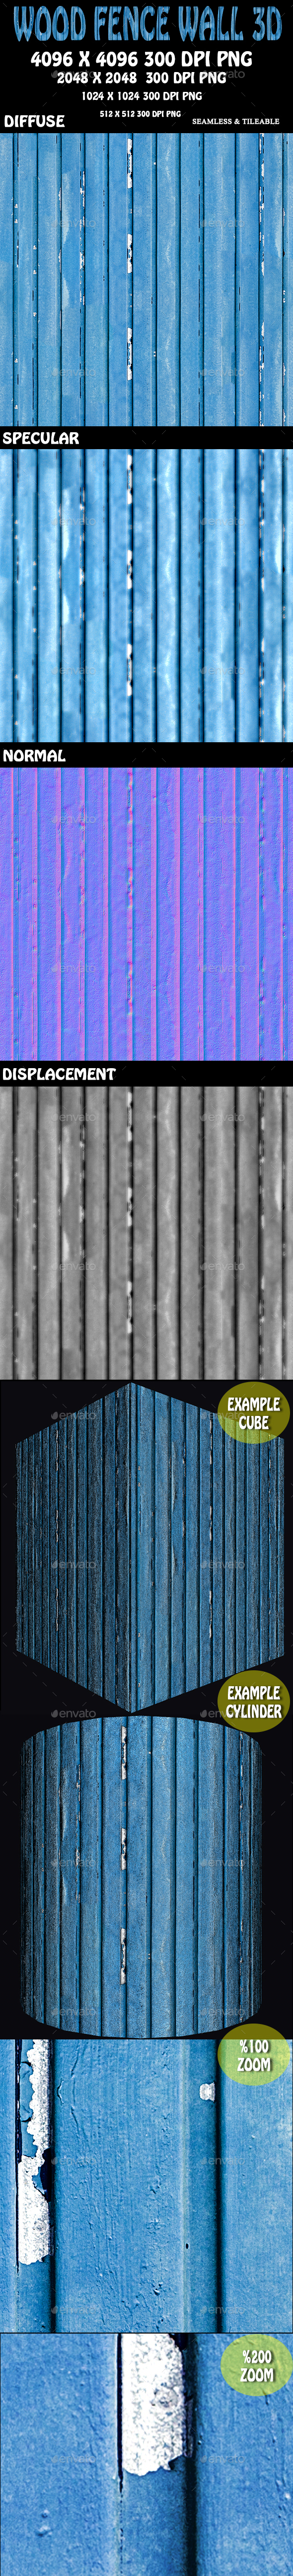 Wood Fence Wall 3D - 3DOcean Item for Sale